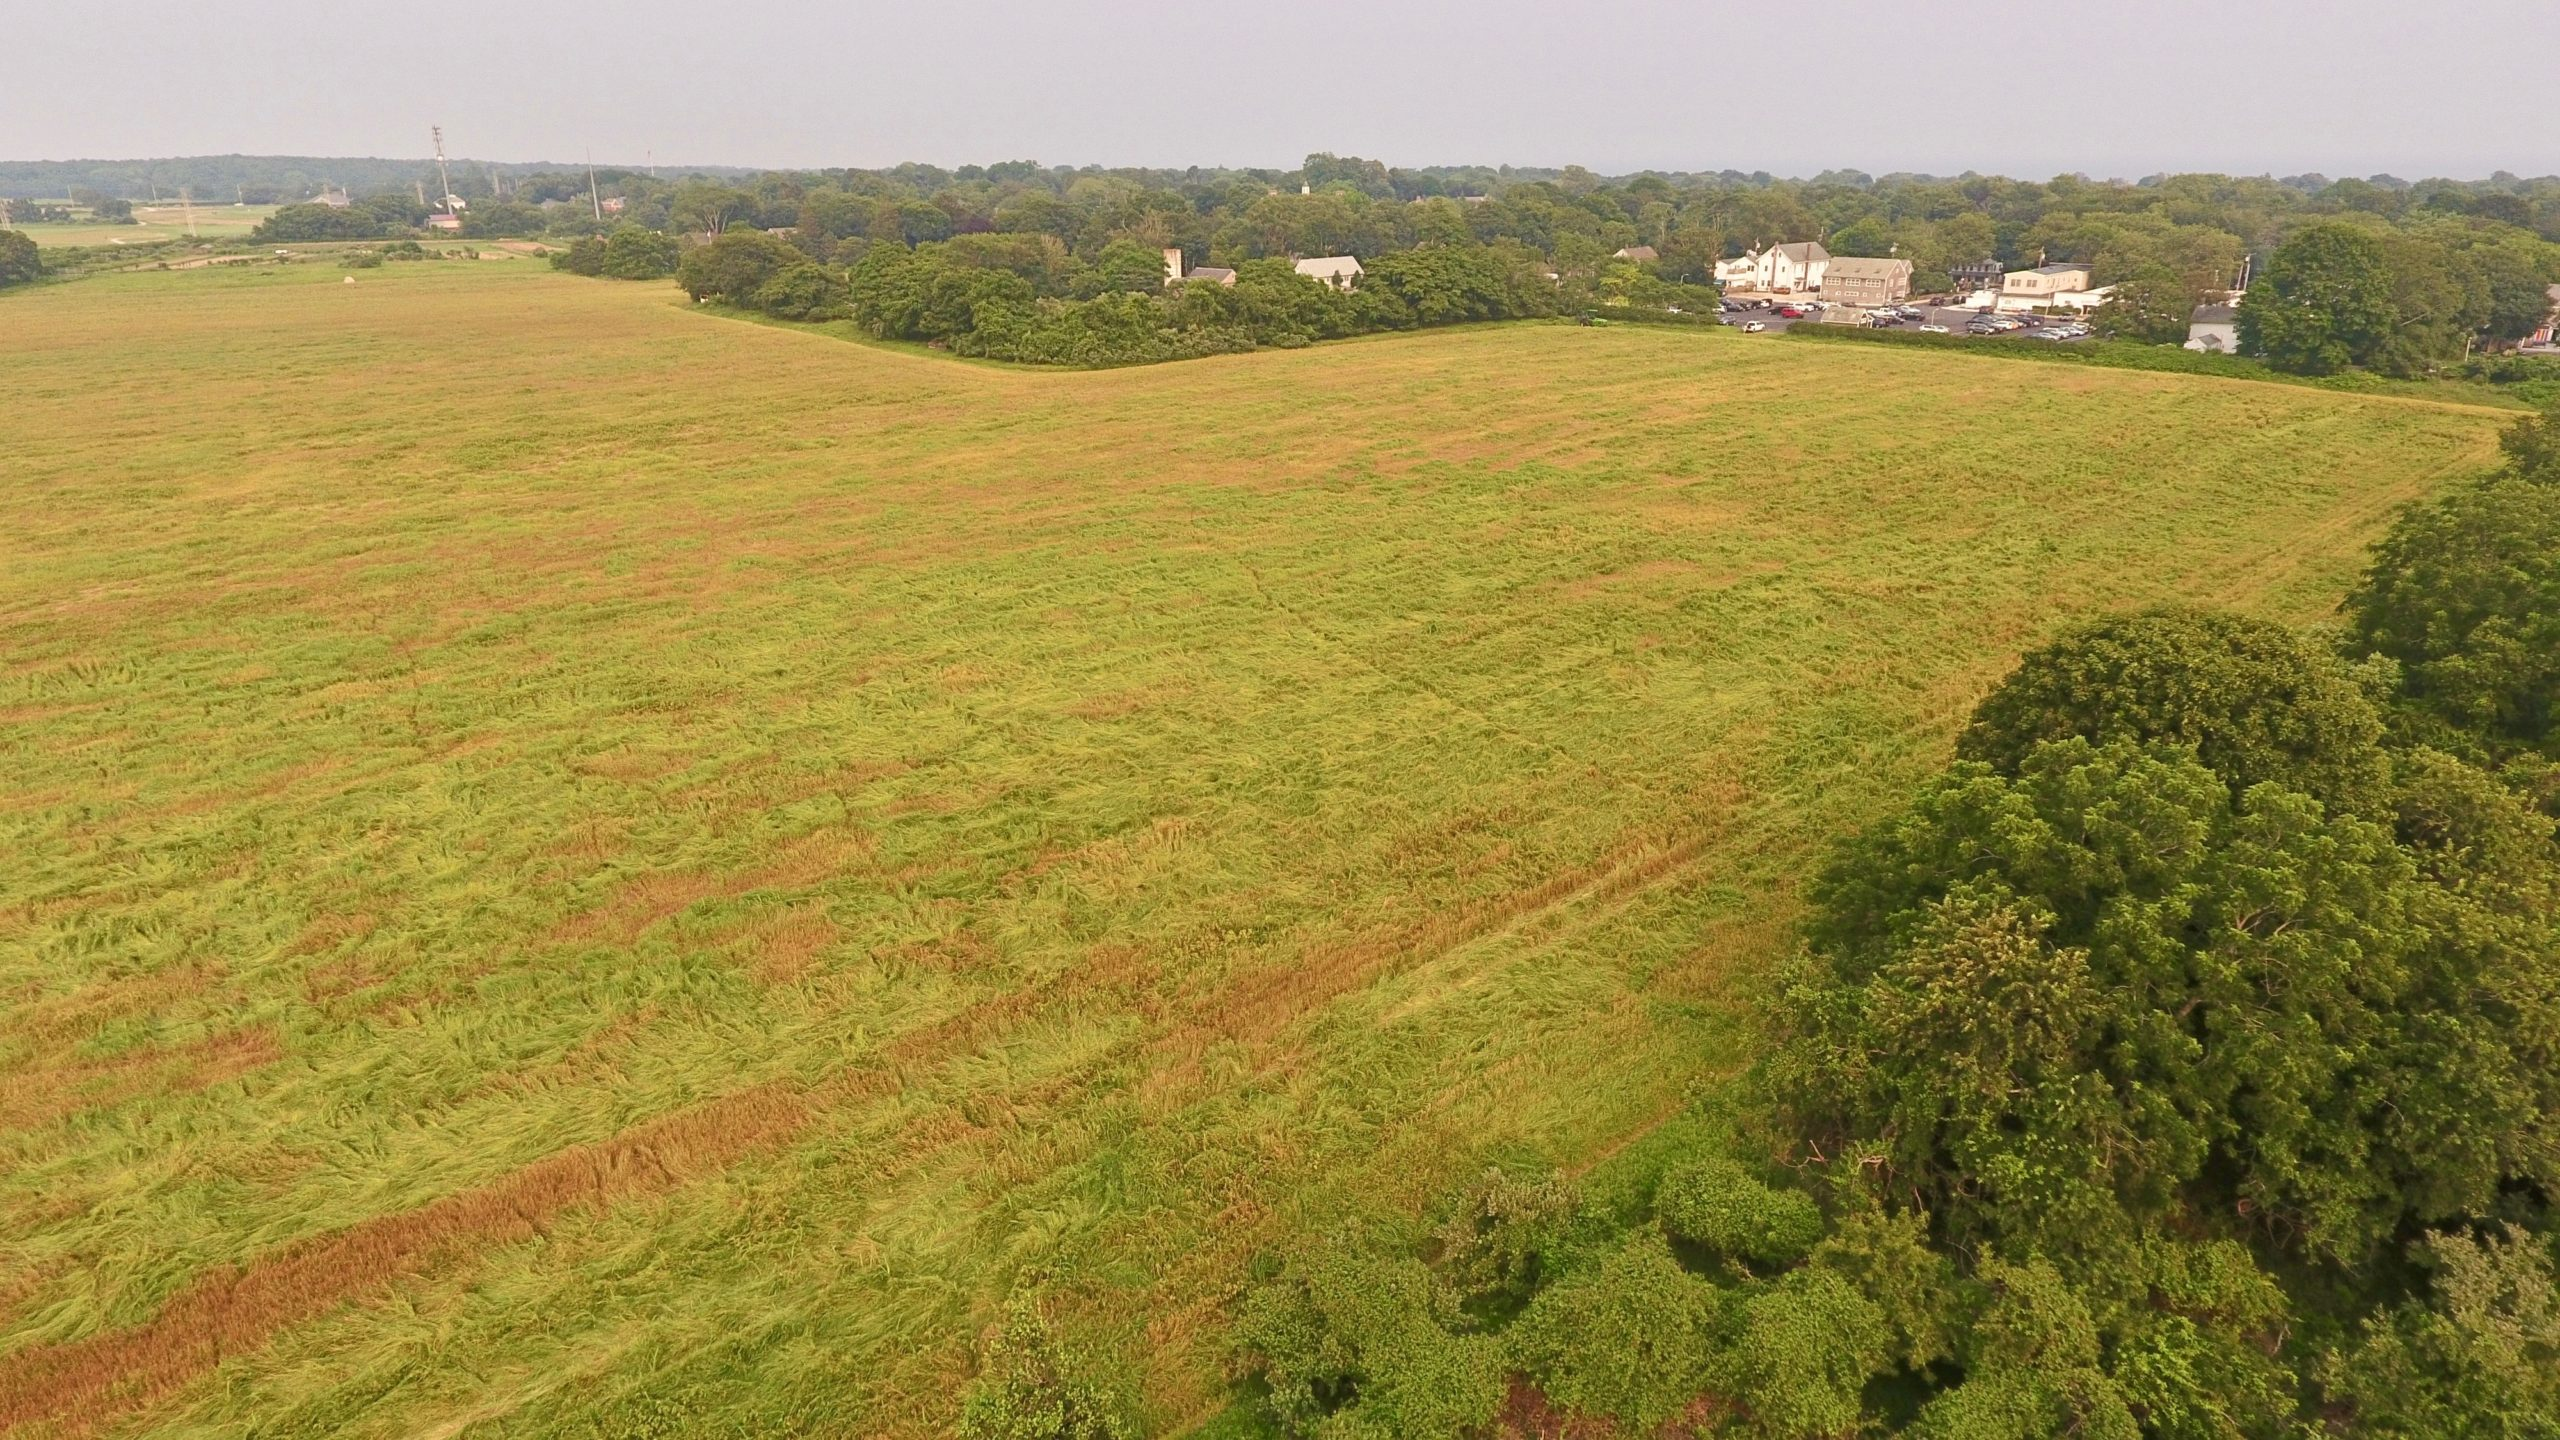 The town will pay the Bistrian family $28 million over the next two years for owner ship of parts of the family's Amagansett farm and for development rights off of other parts. The town will retain a portion of the land to use for